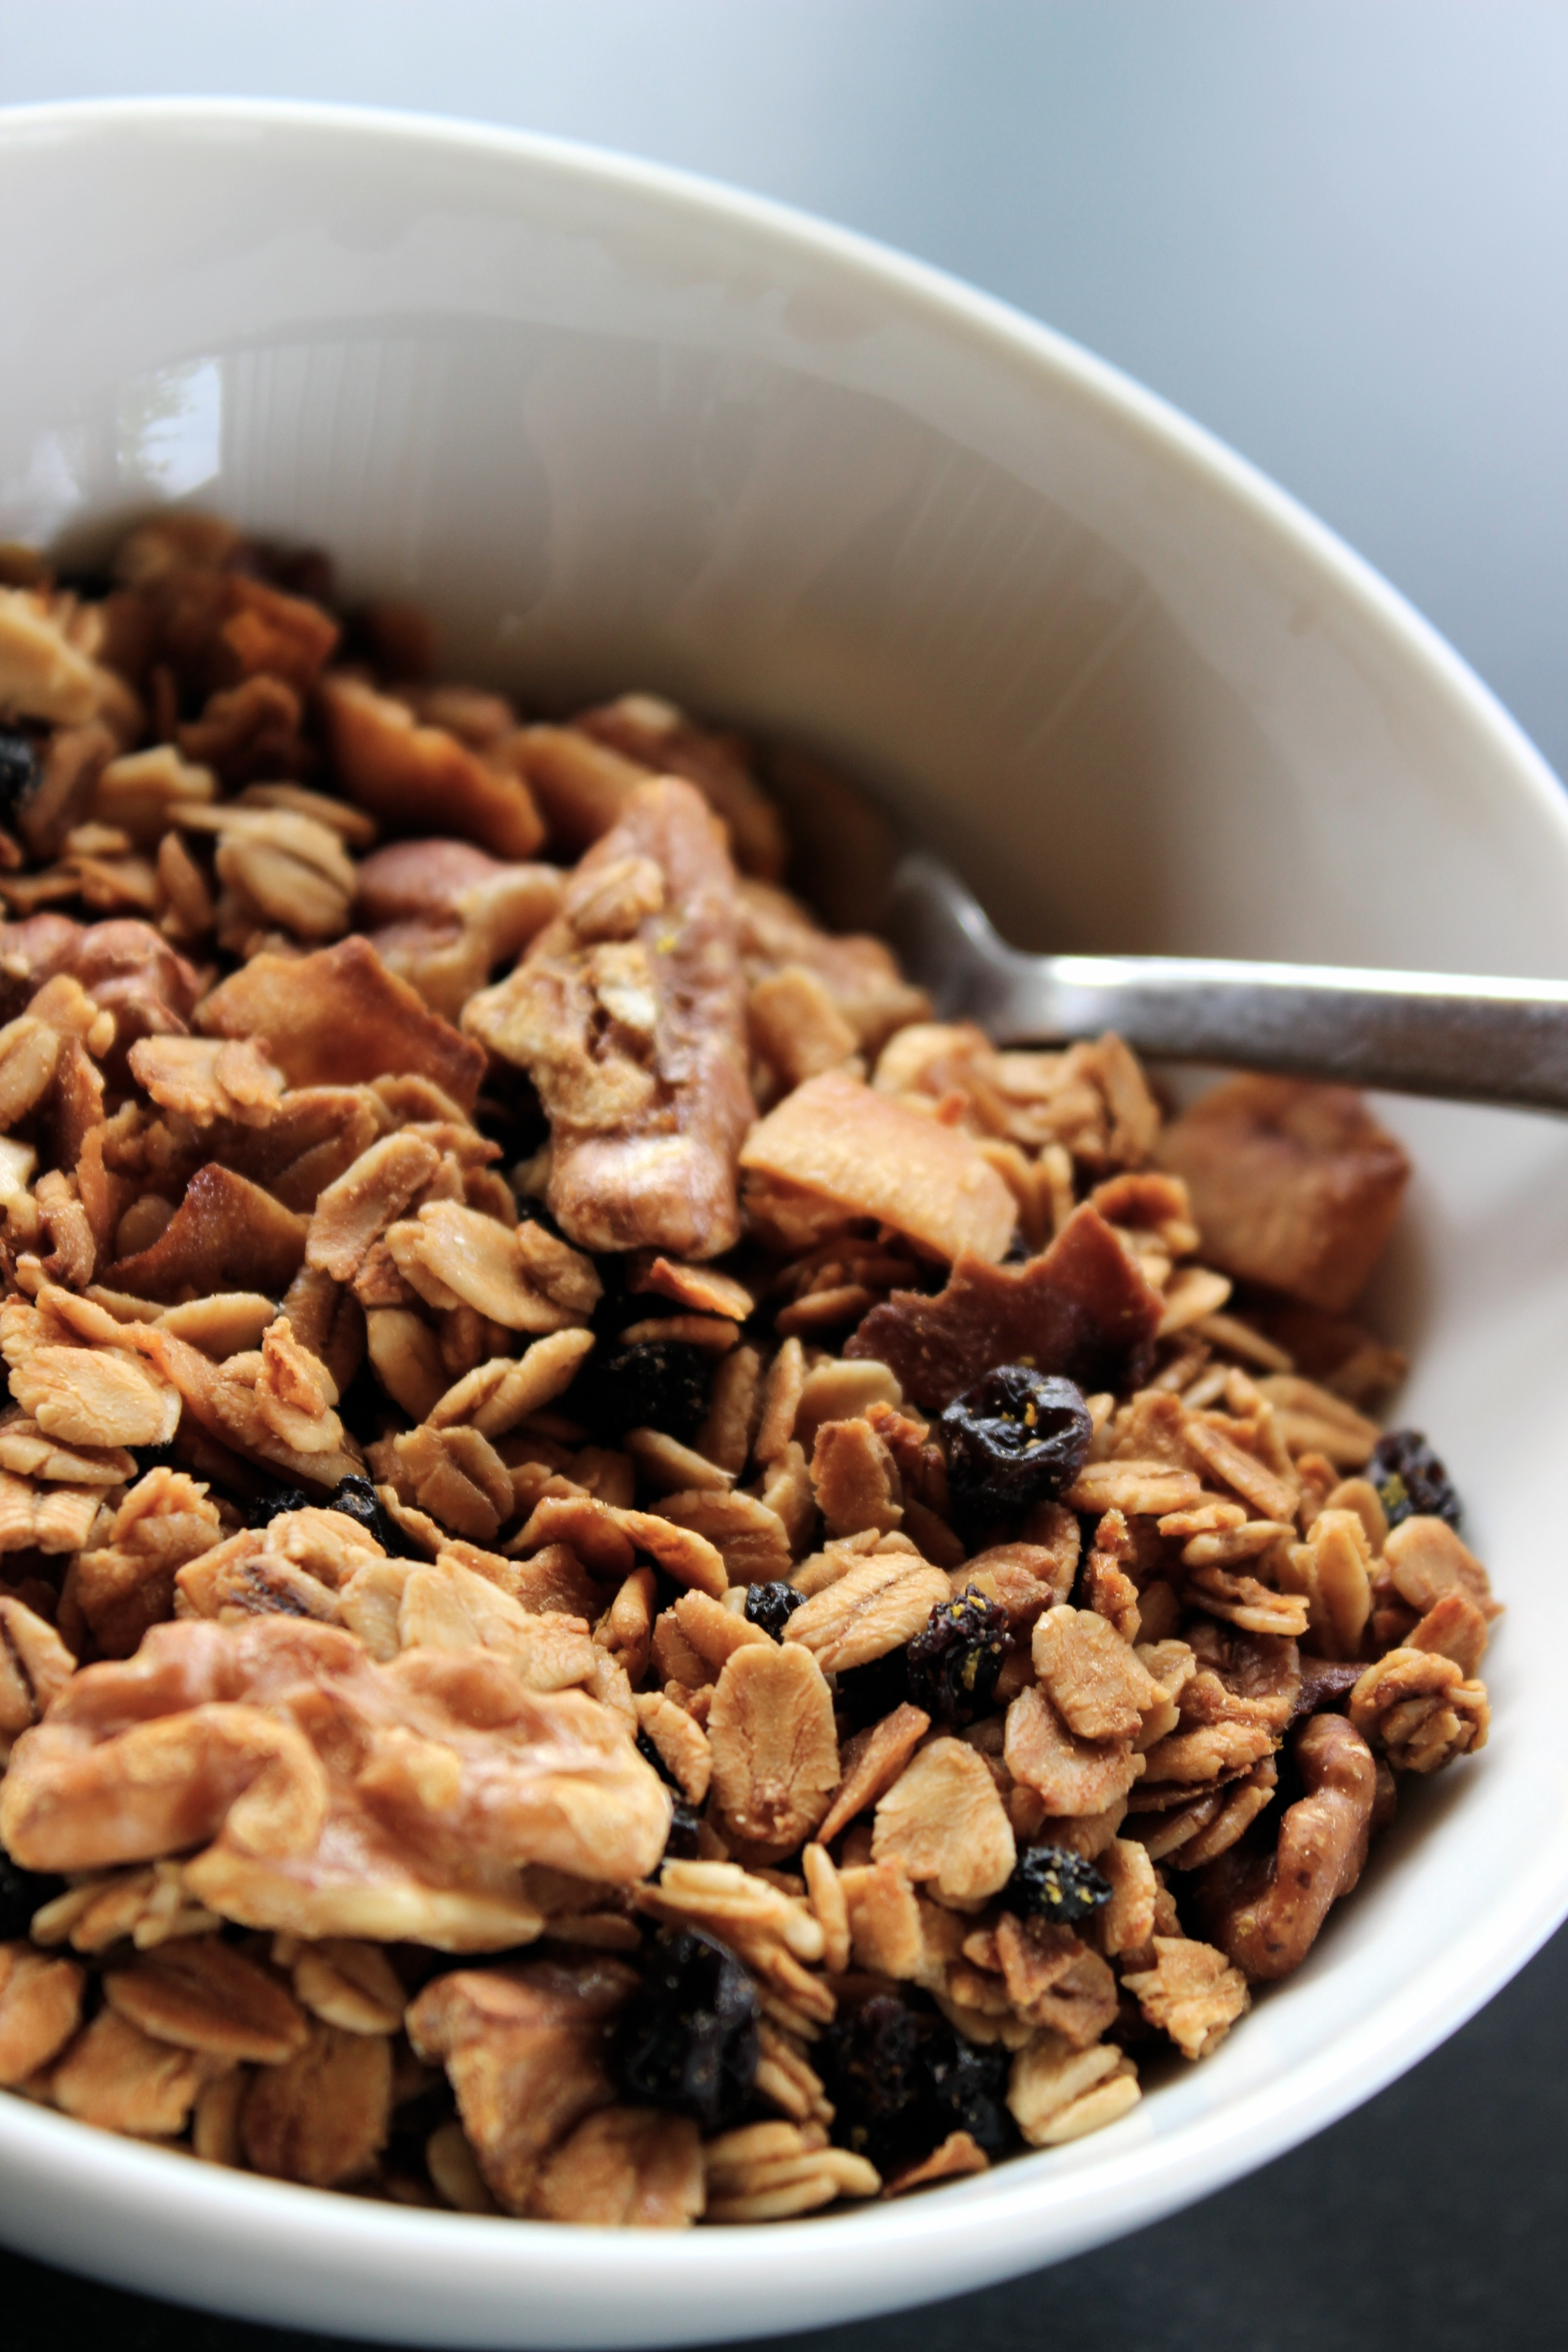 Freshly made granola is hard to resist!